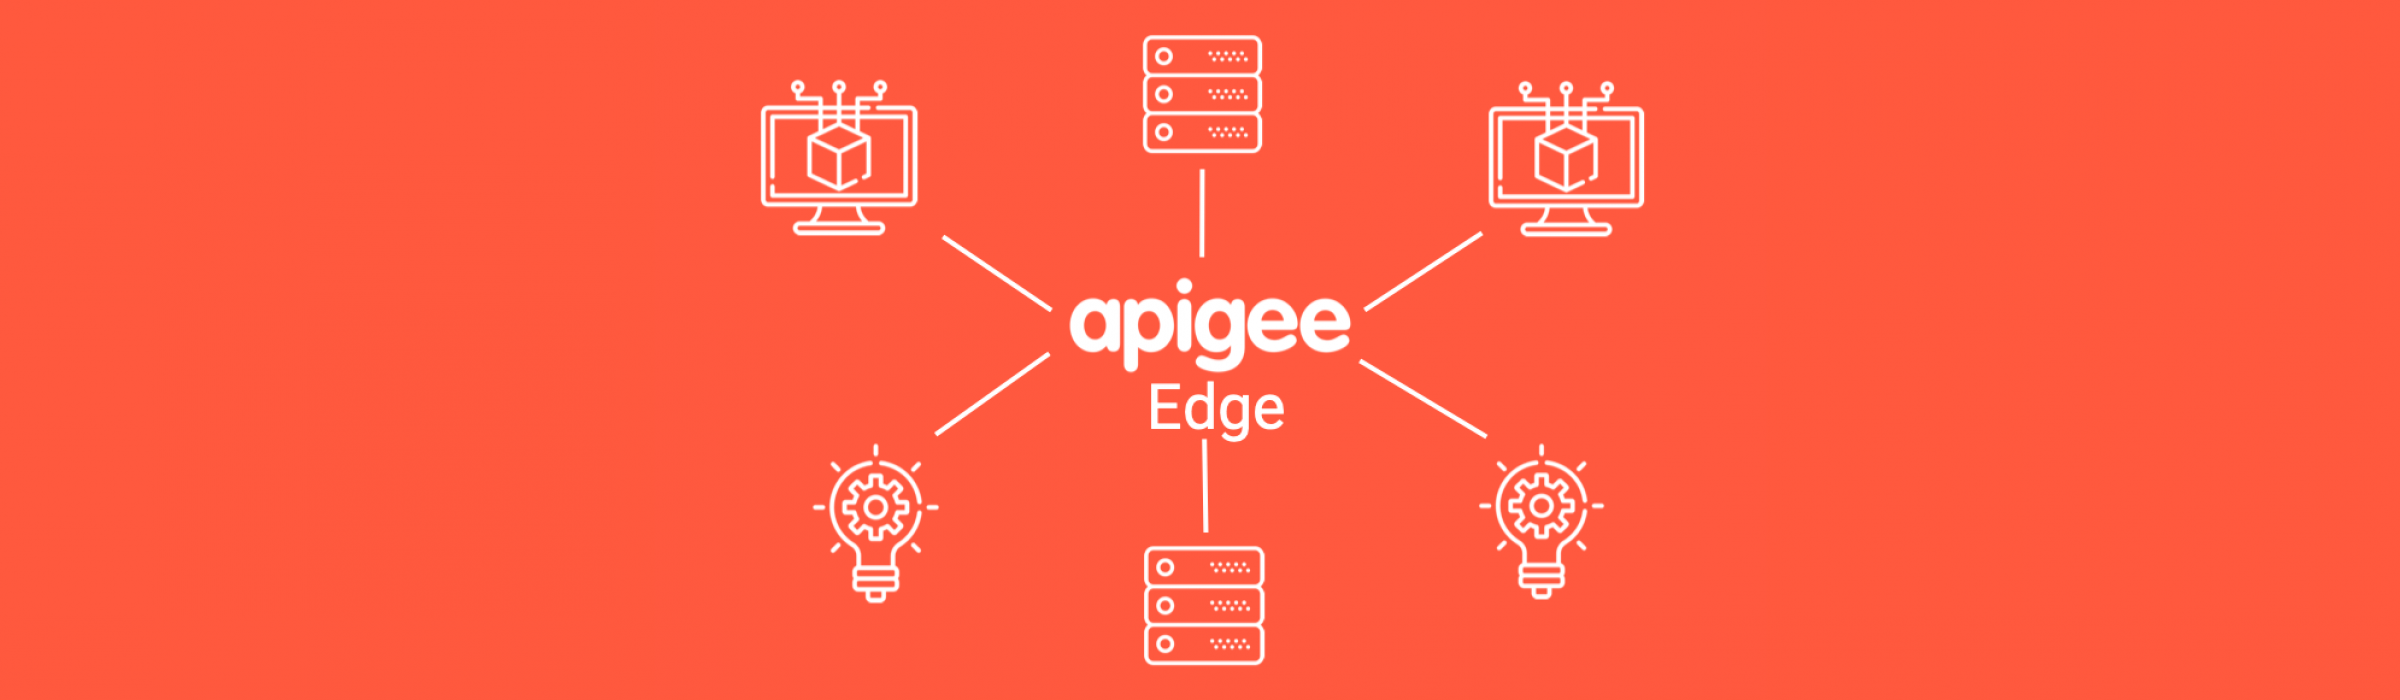 Apigee is the Super Platform for API Management